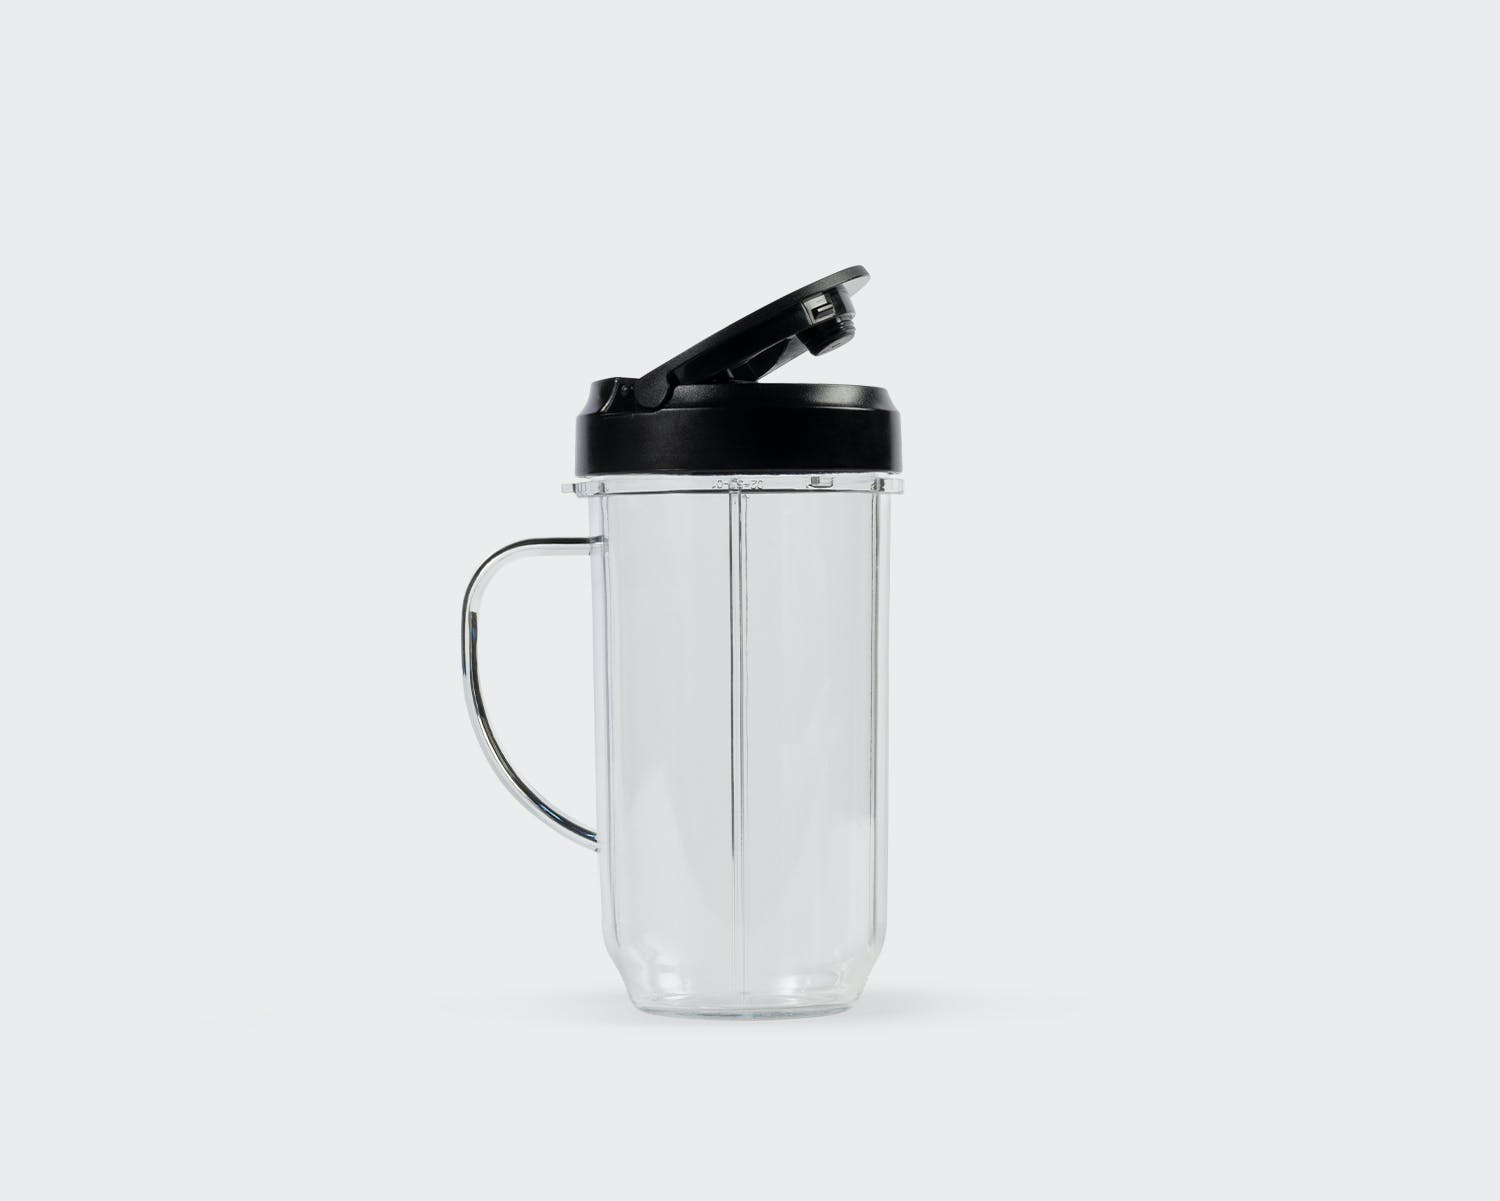 Magic Bullet 22 oz Travel Mug